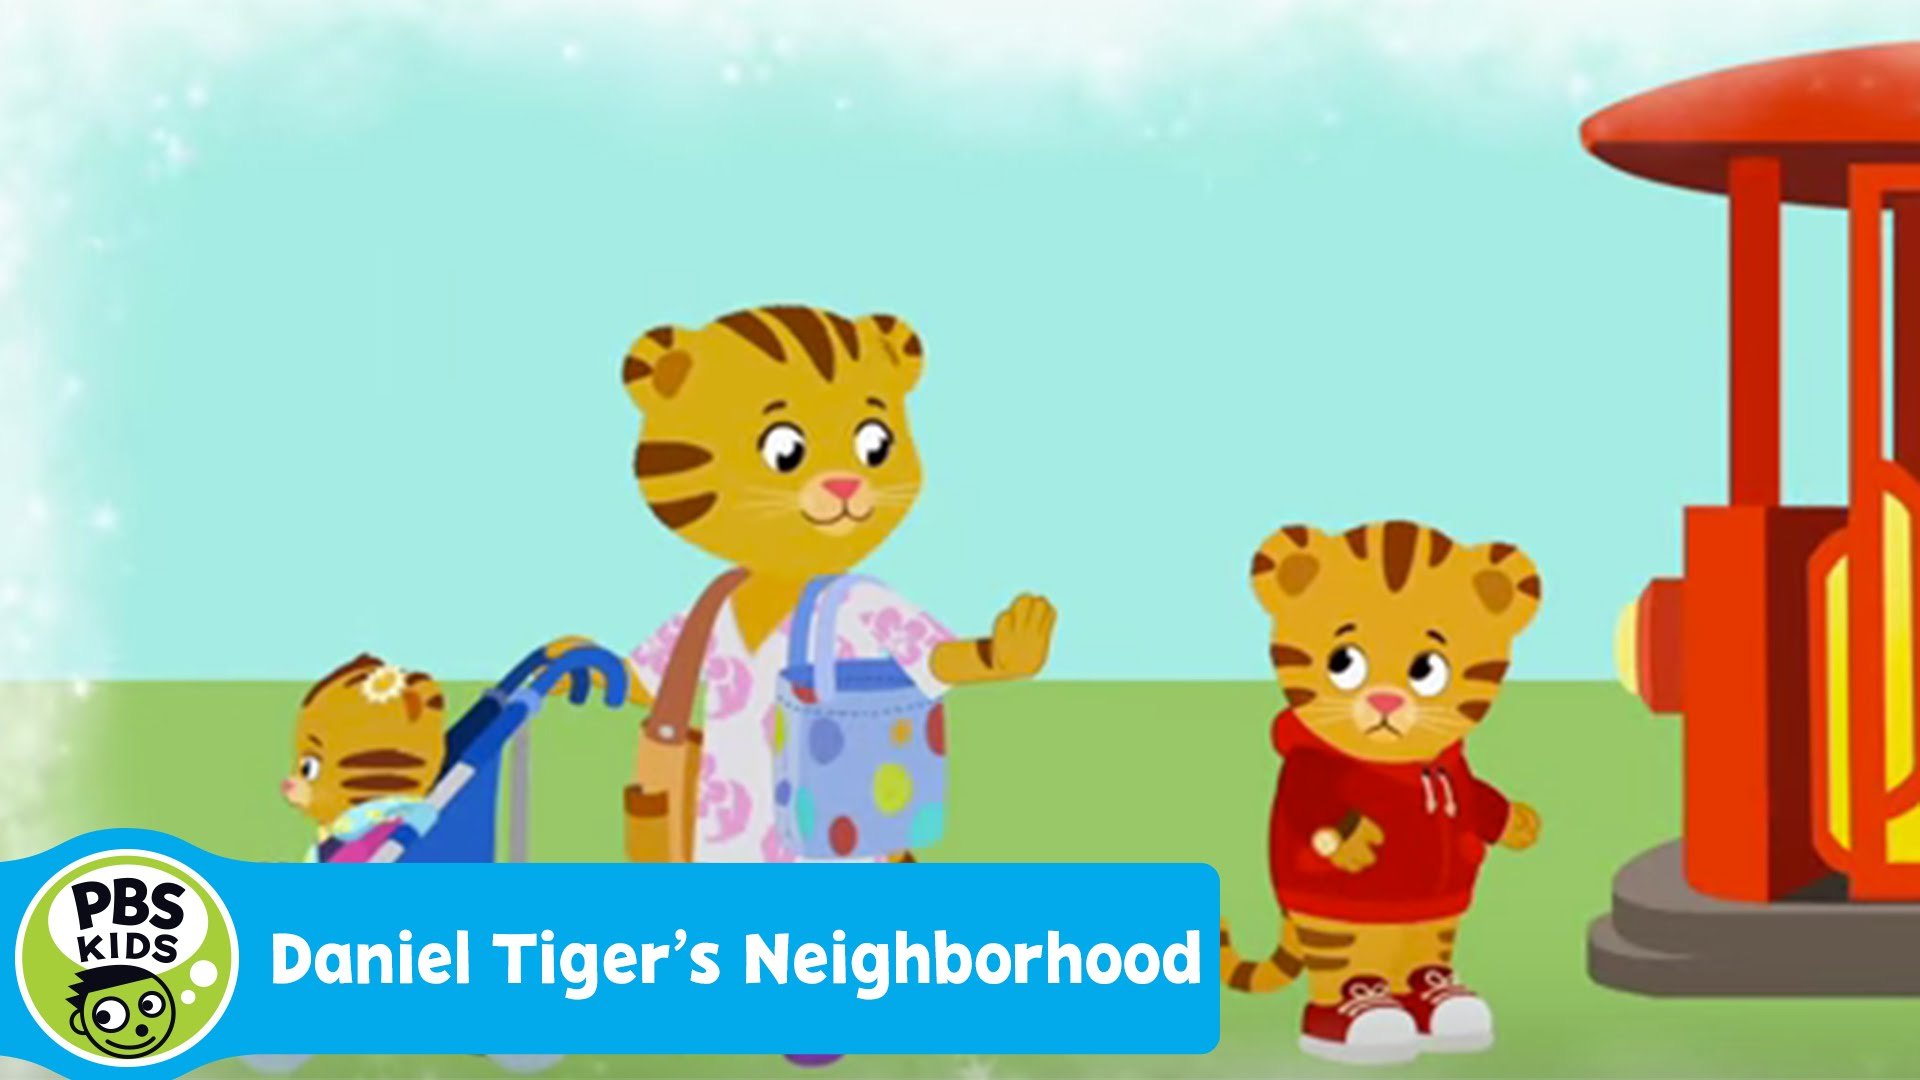 Trolley clipart daniel tiger Wants to Trolley Daniel NEIGHBORHOOD